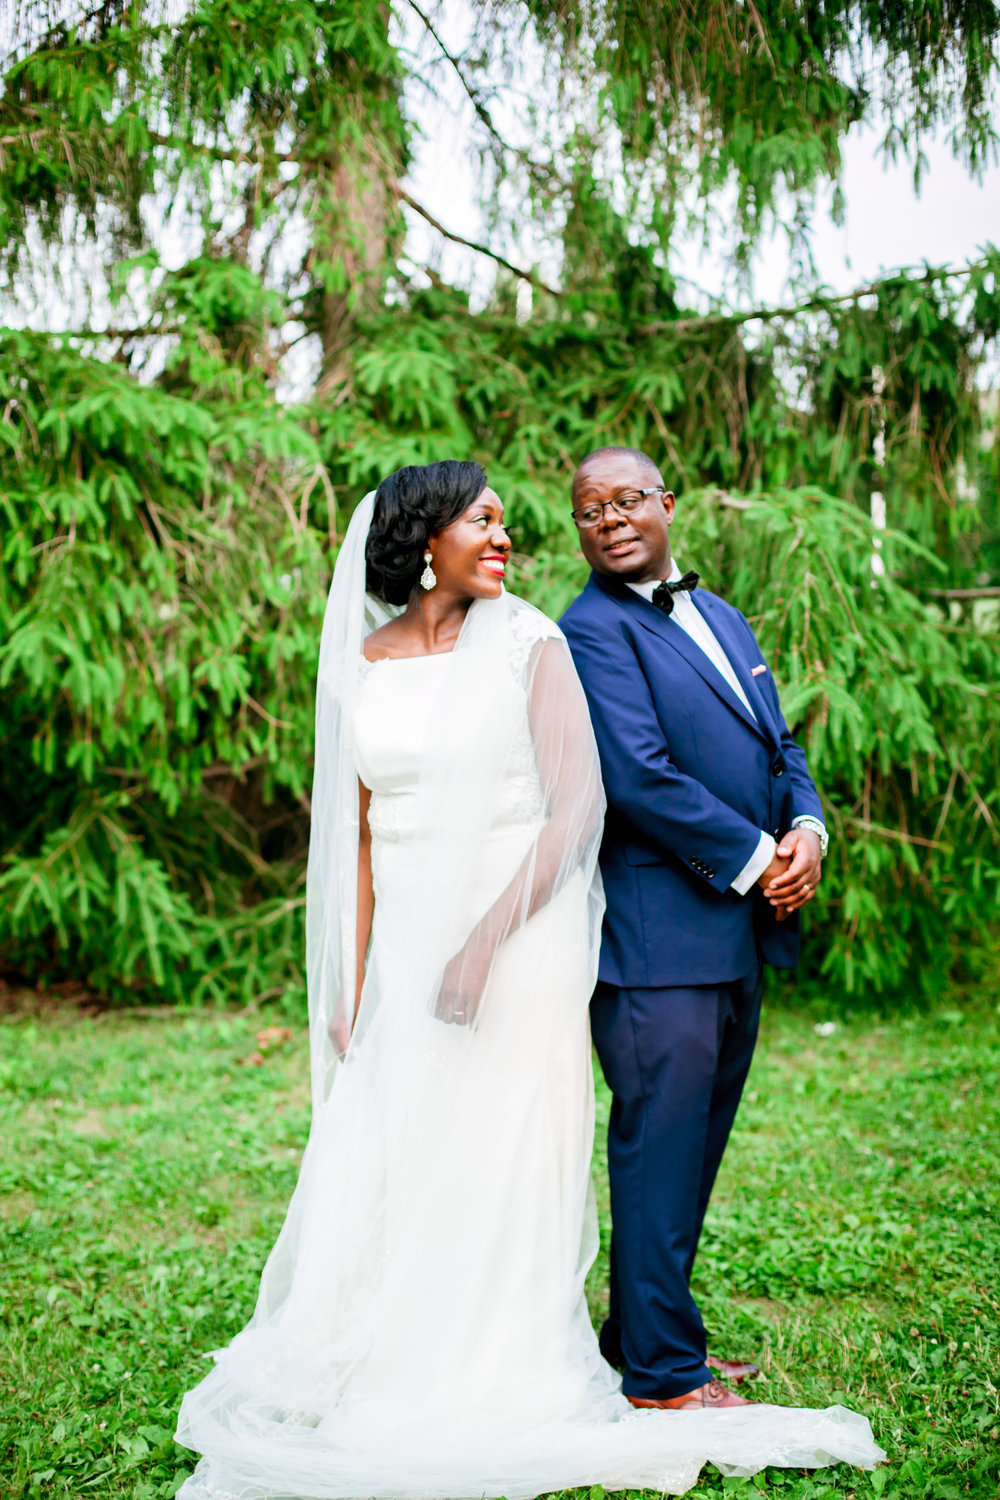 Wedding Photography Kenyan Canadian Photographer Karimah Gheddai Tyndale University College African Black couples Portraits Blue Suit International Multicultural Ontario Toronto Canada Groom Couple Posing ideas